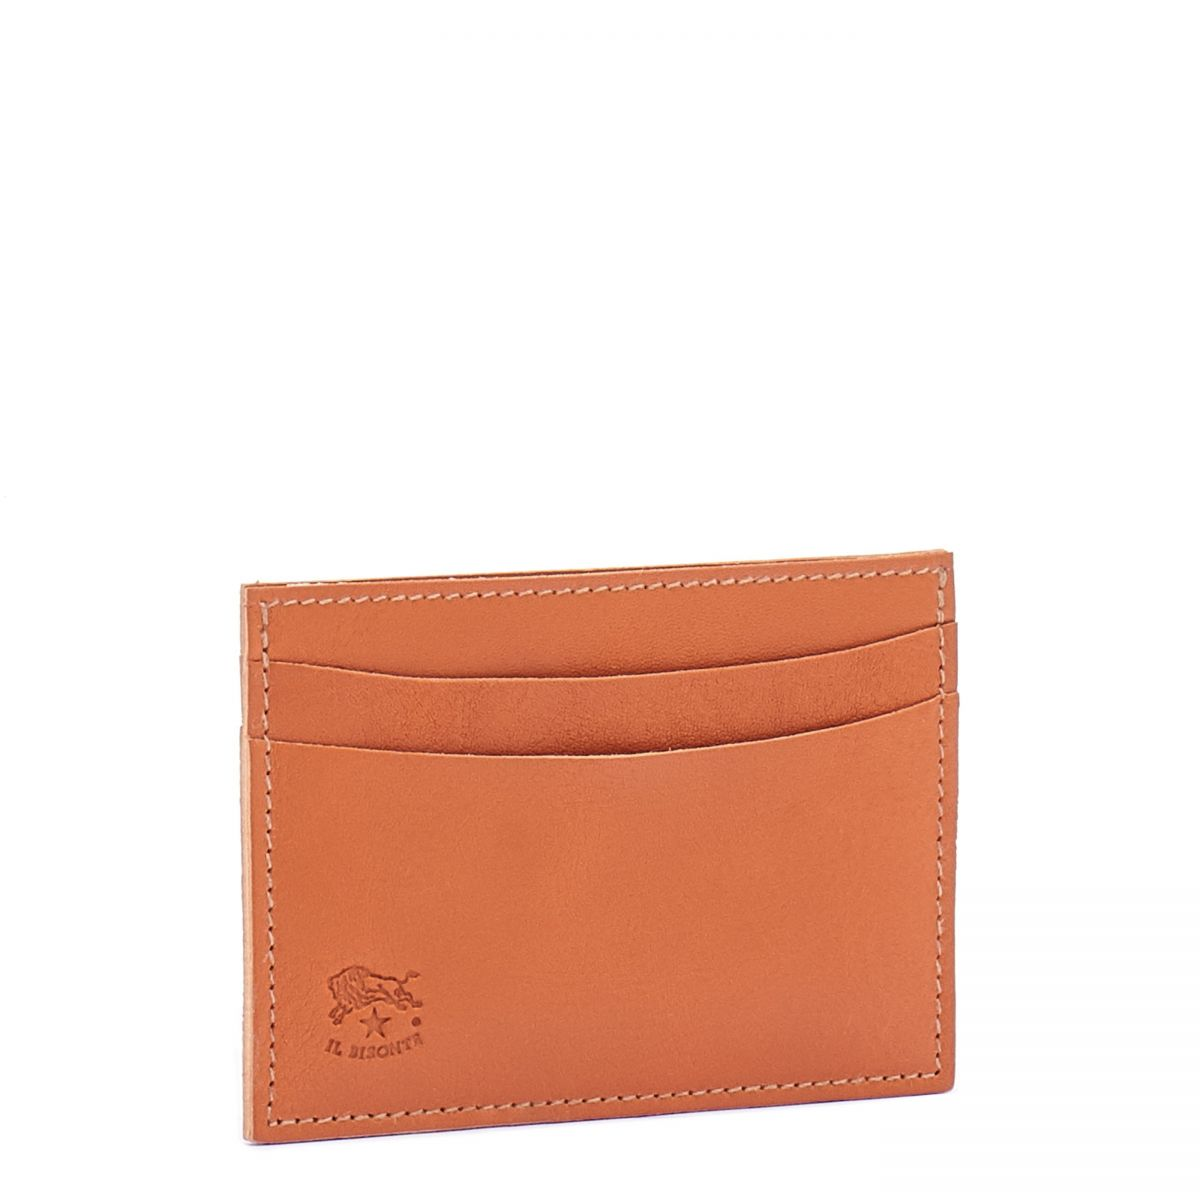 Card Case  in Cowhide Double Leather SCC019 color Caramel | Details